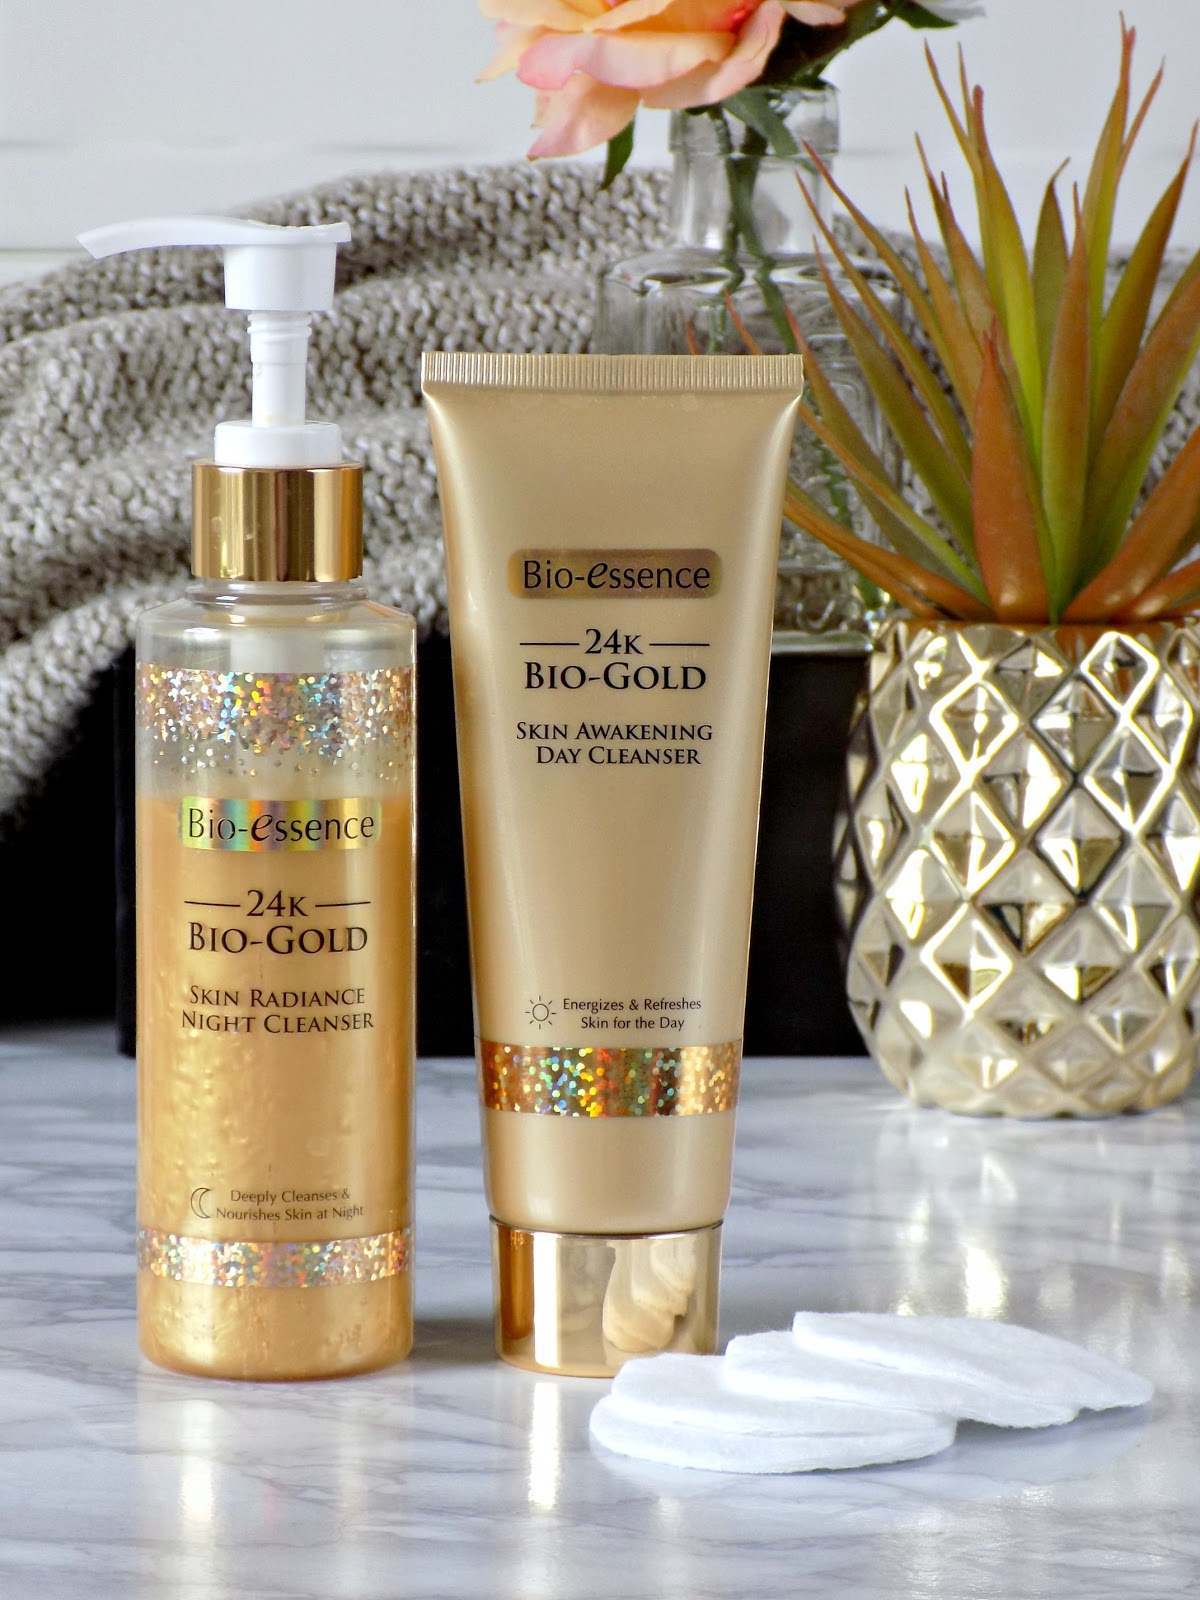 Bio-Essence 24K Bio-Gold Day and Night Cleanser